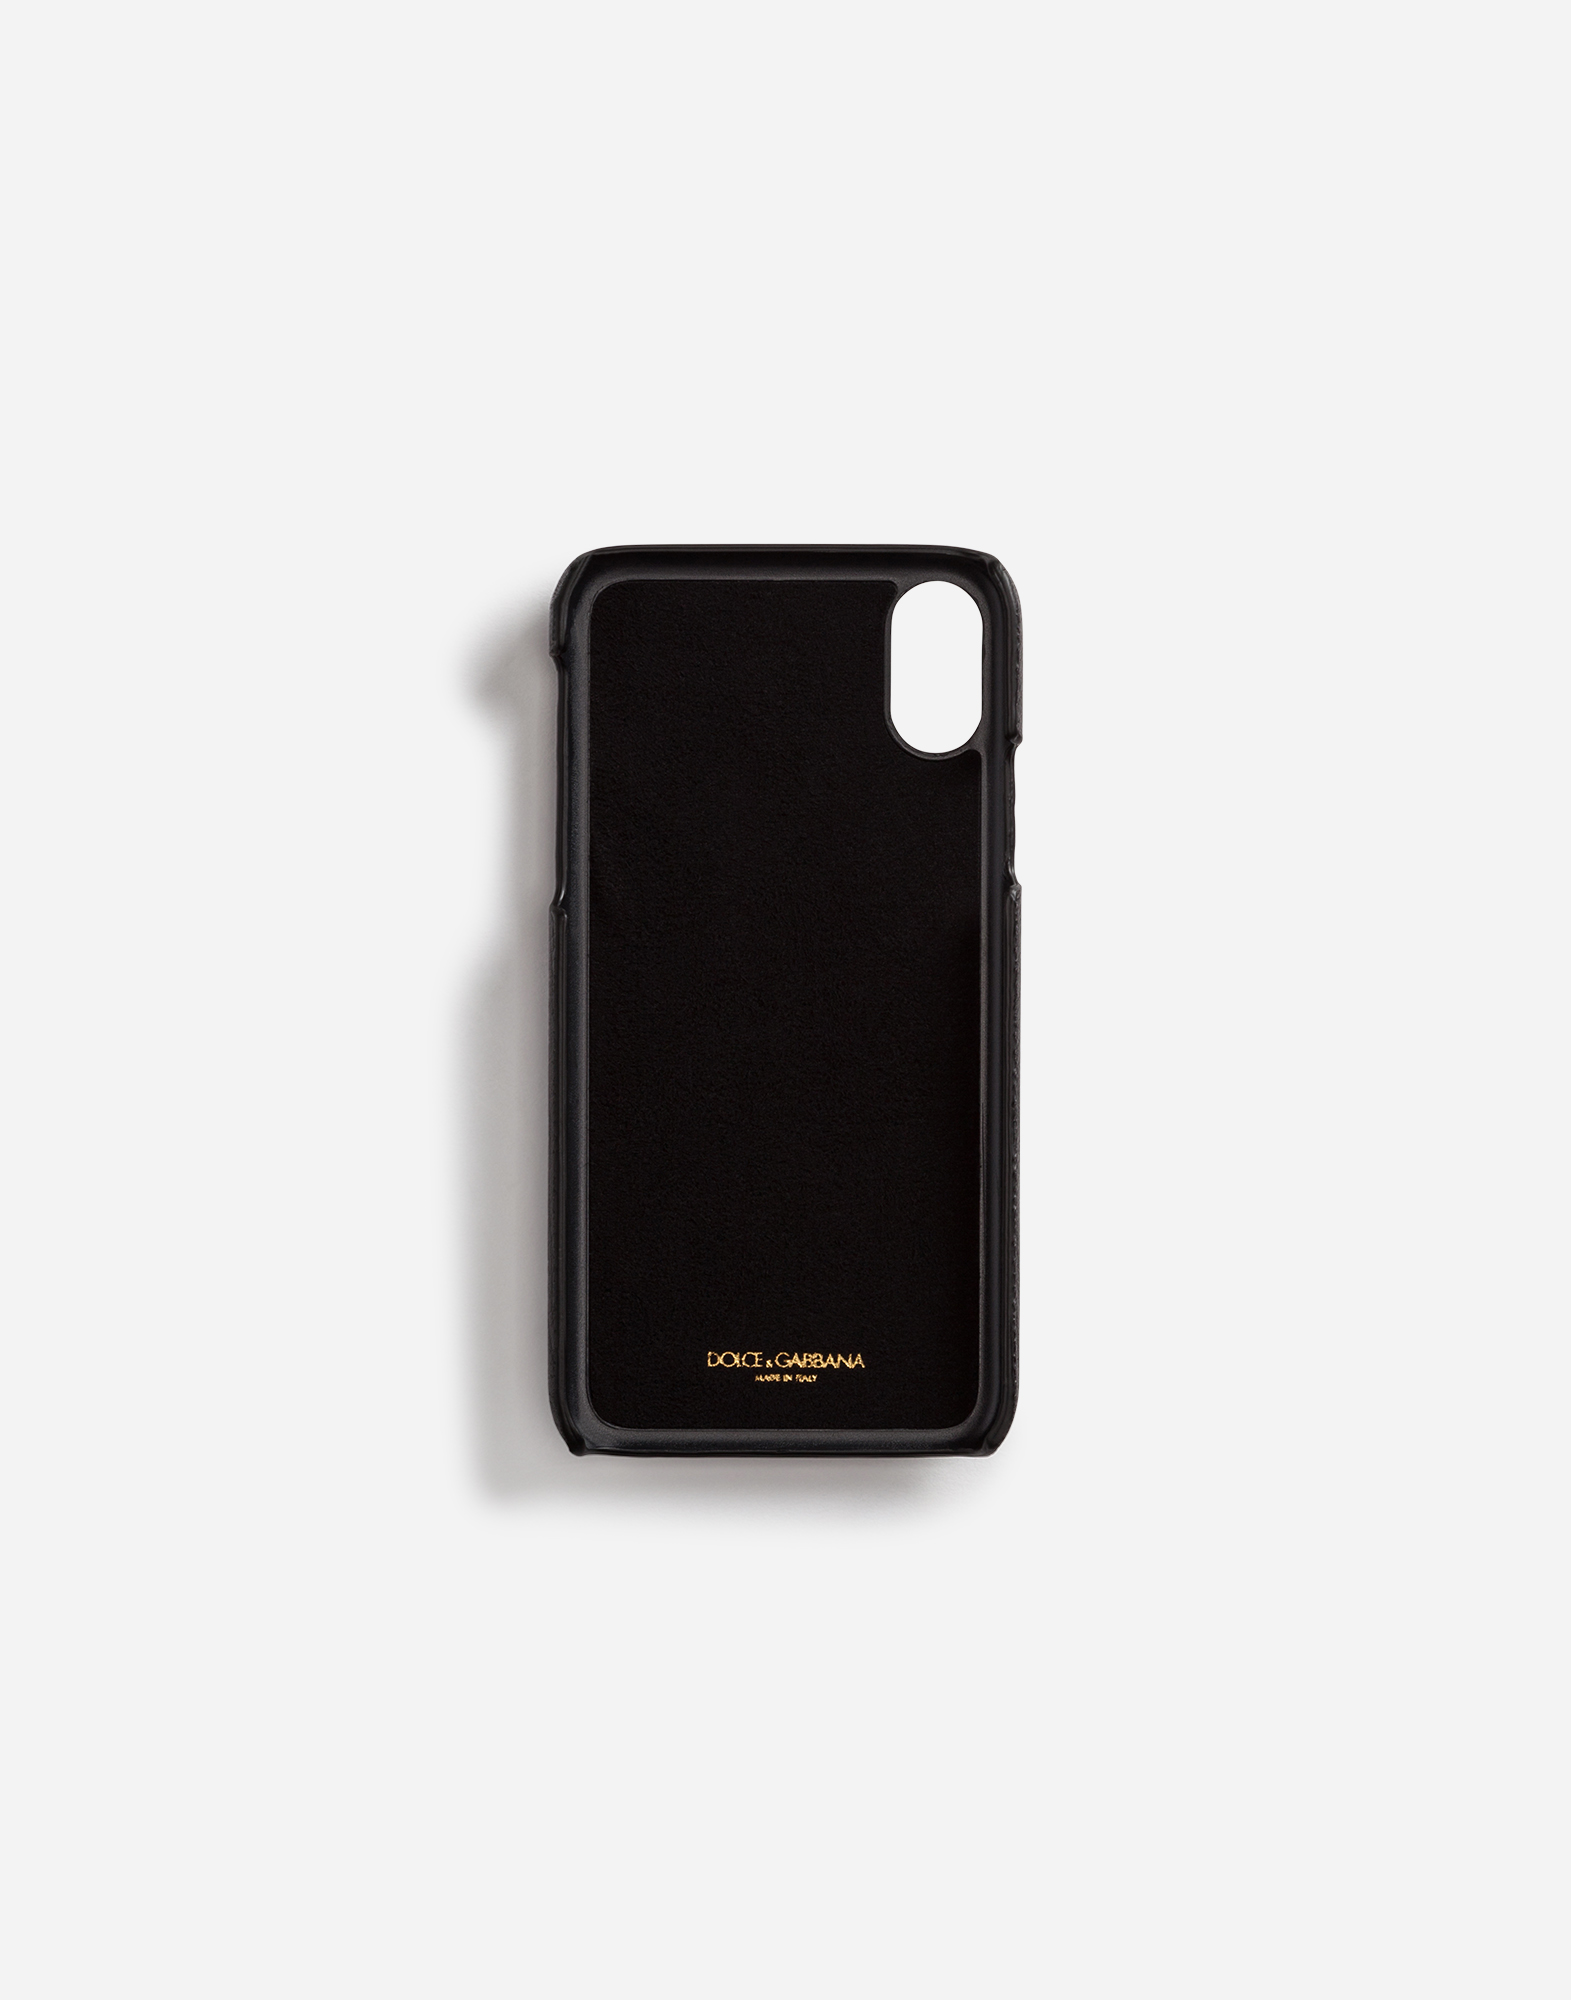 Dolce & Gabbana IPHONE X COVER IN DAUPHINE CALFSKIN WITH DESIGNERS' PATCHES